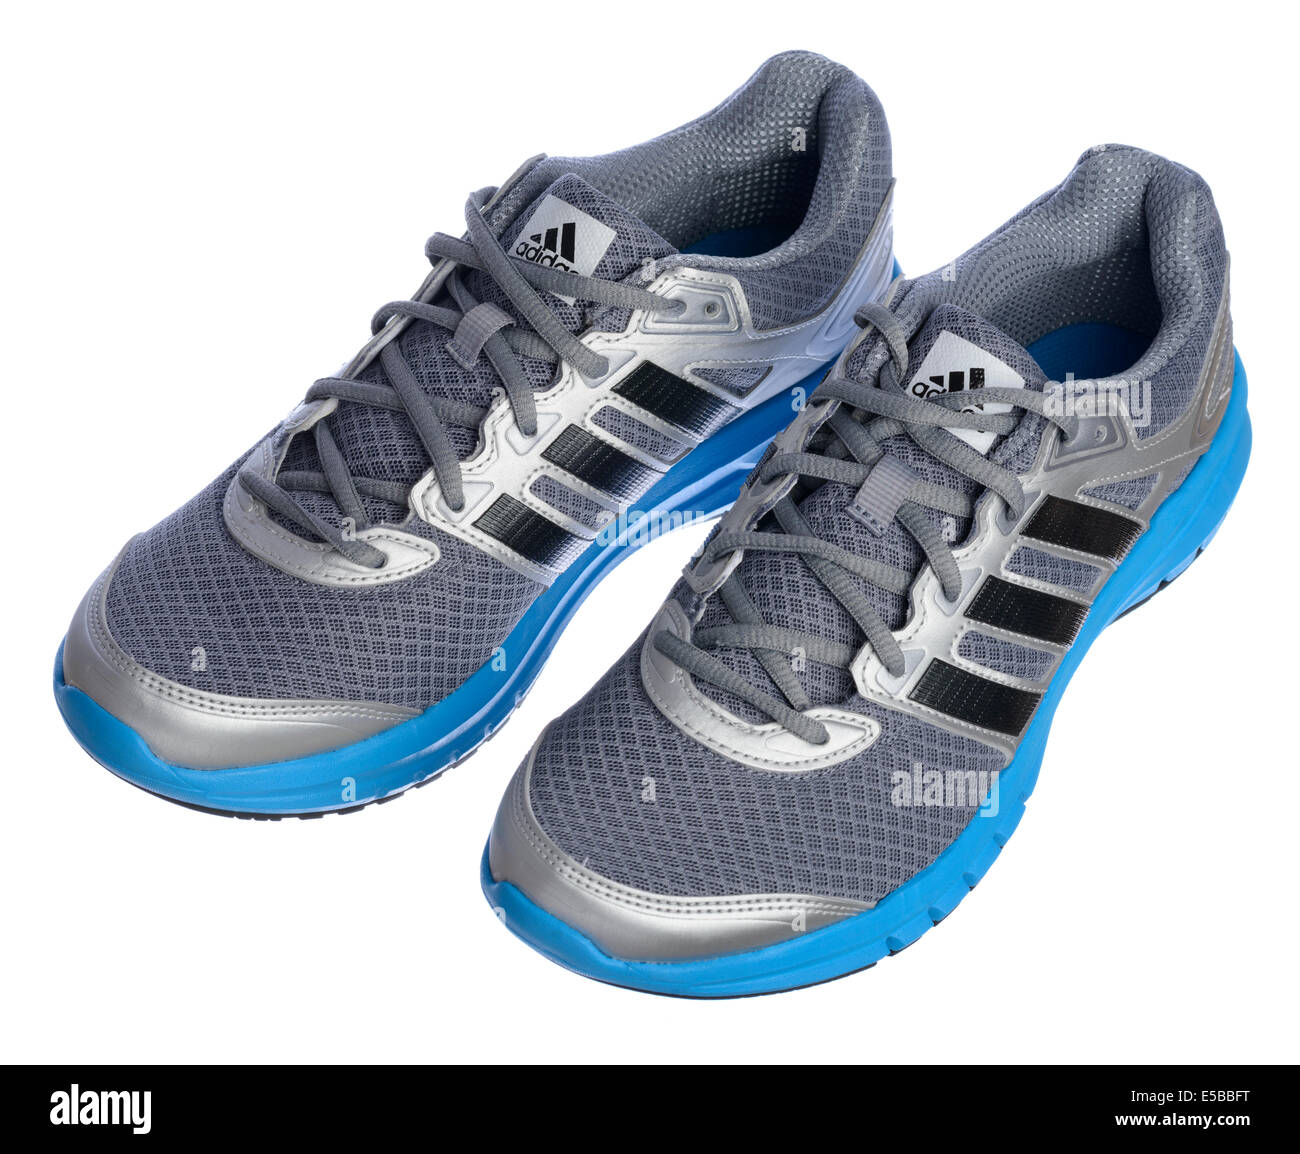 Silver and blue Adidas running shoes - Stock Image